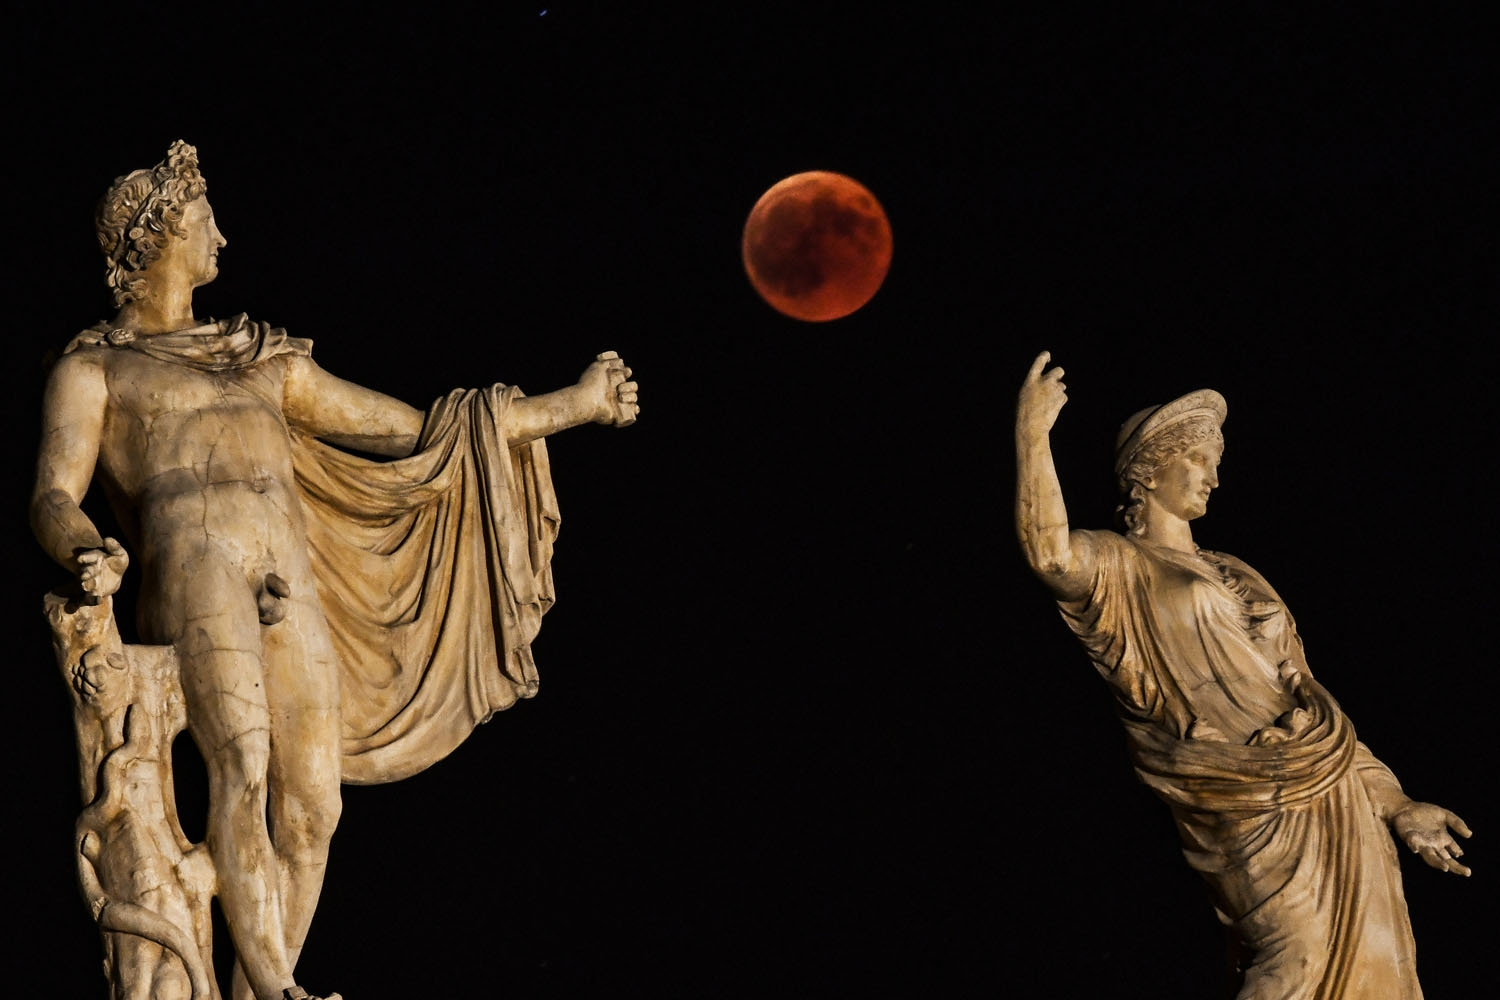 blood moon tonight greece - photo #28